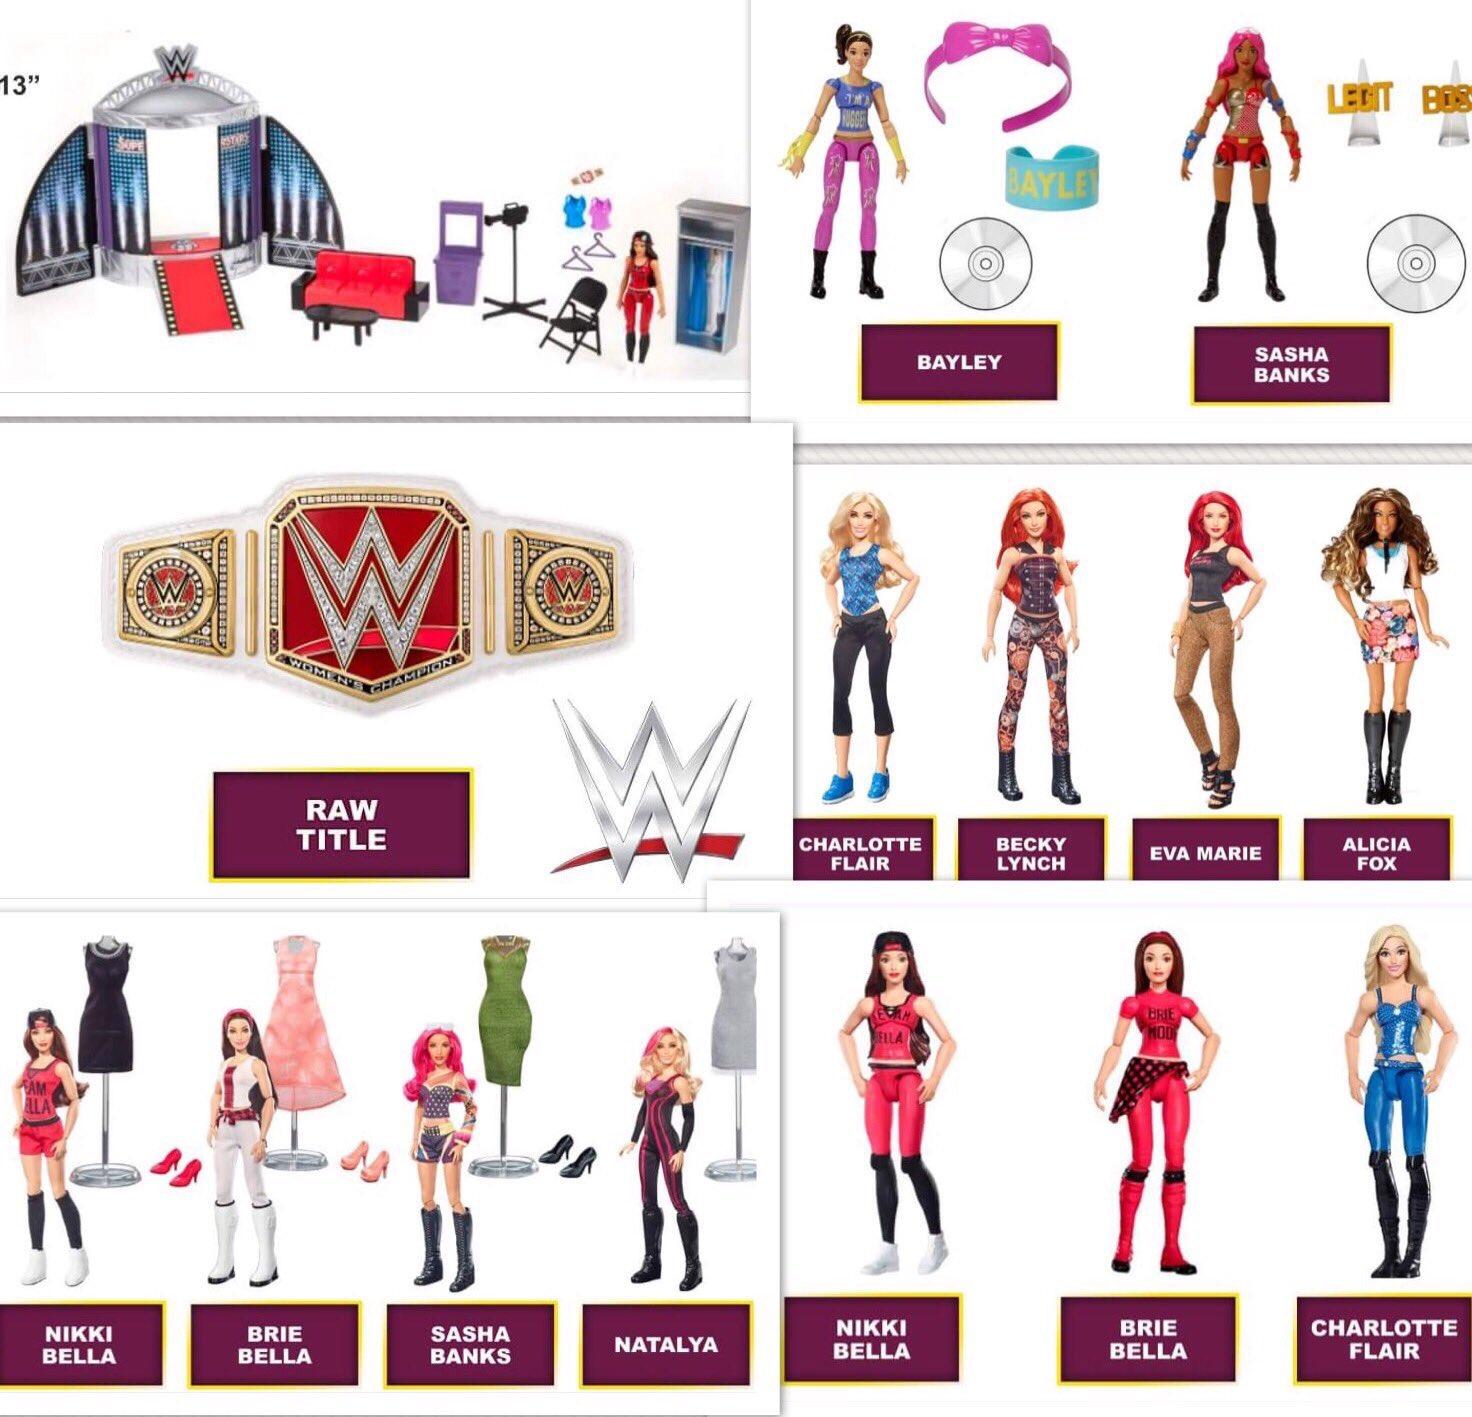 wwe_fashion_dolls